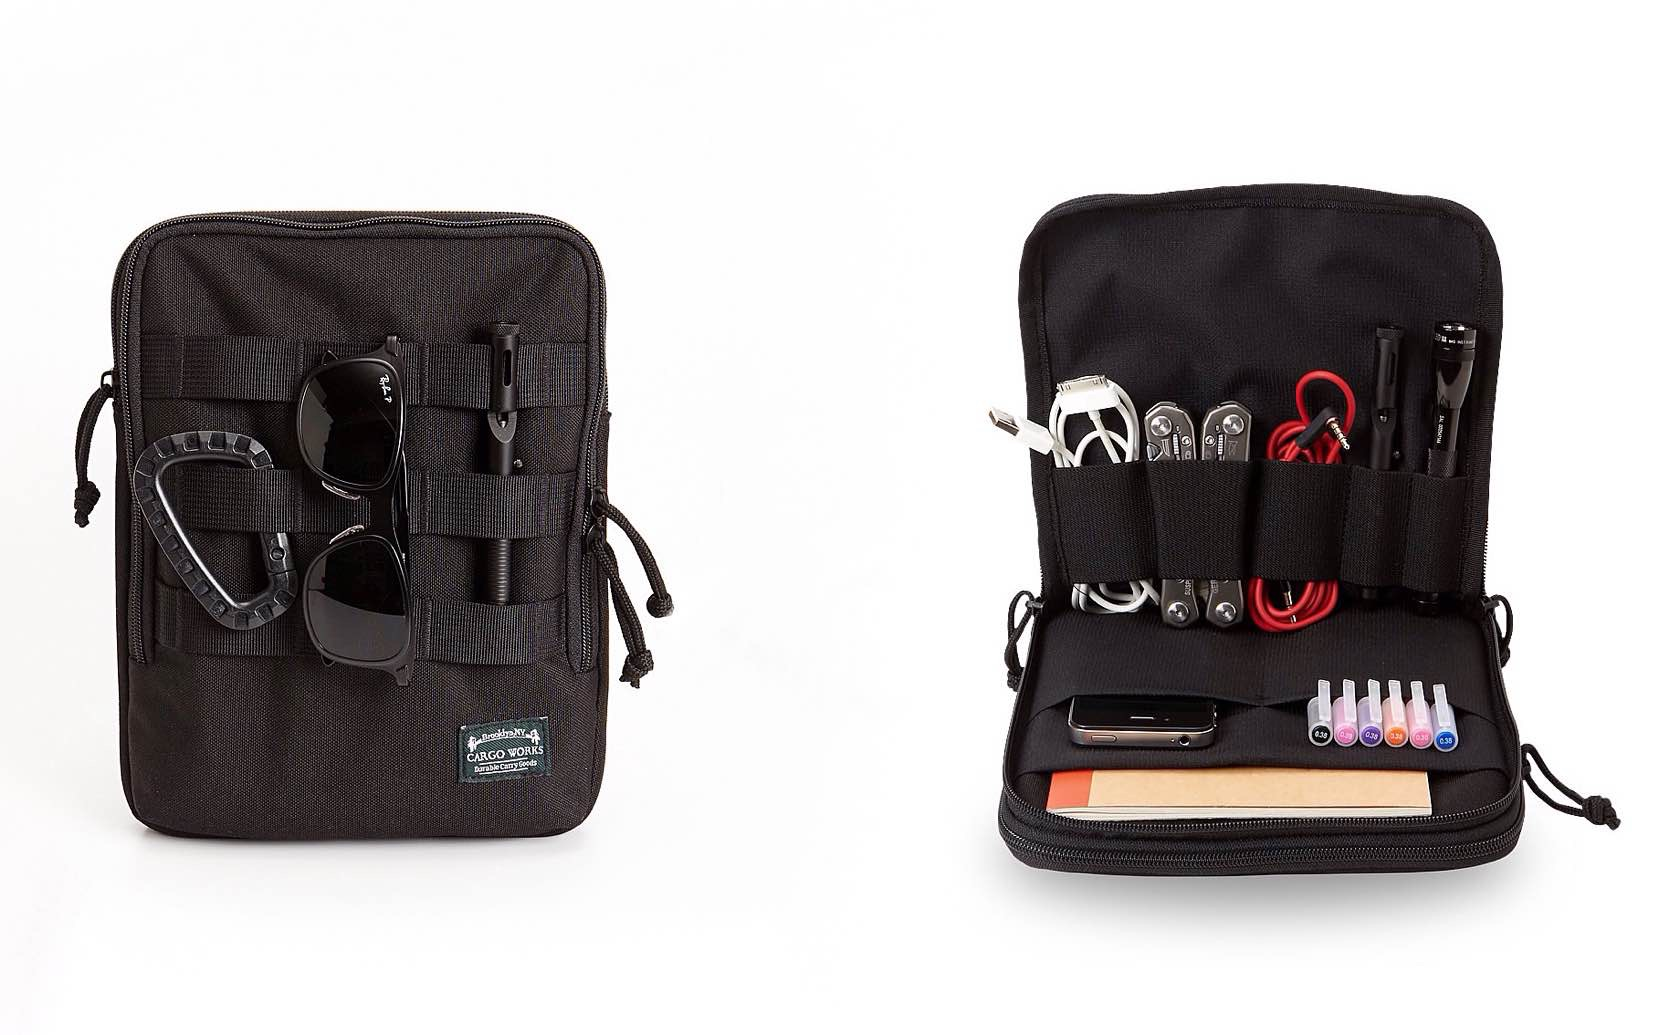 cargo-works-ipad-edc-kit-2